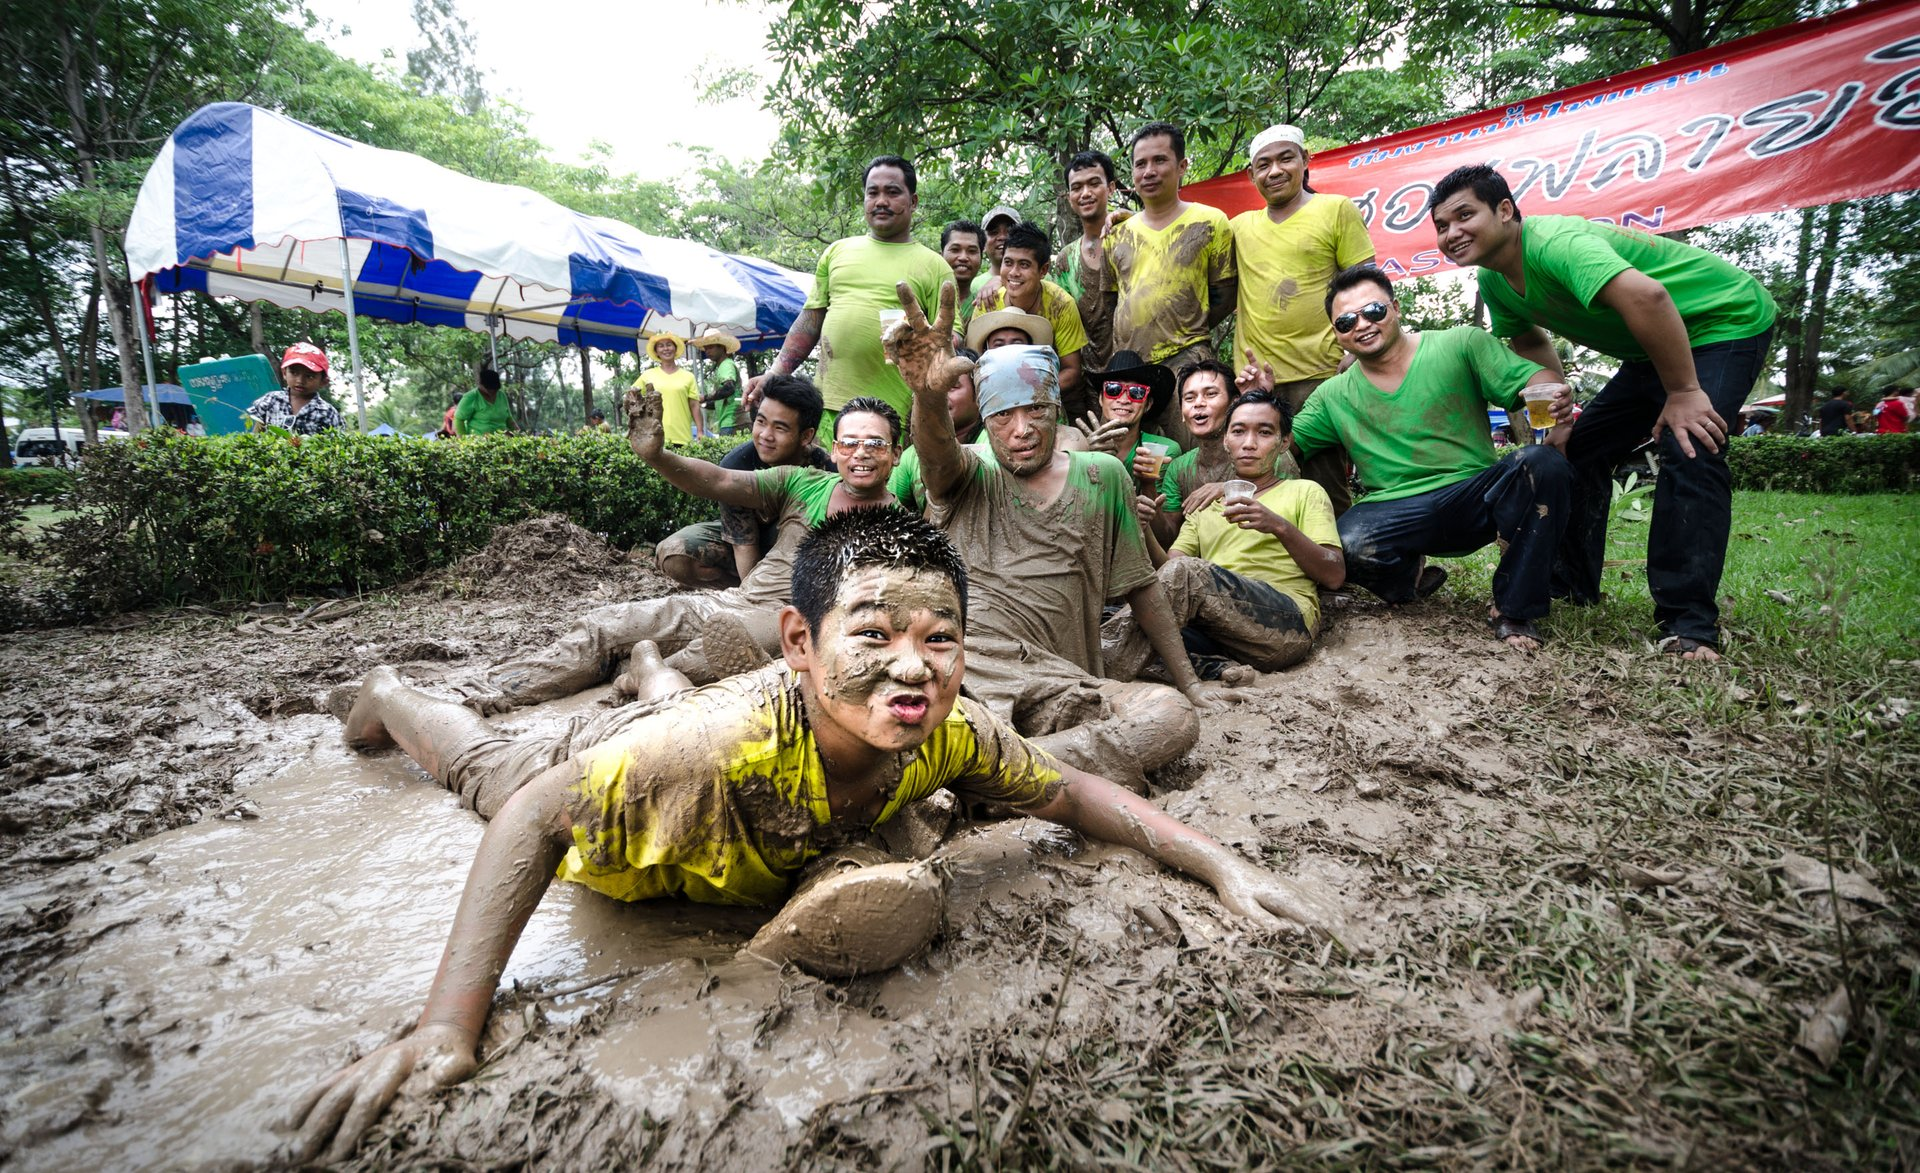 Covering oneself with mud is part of the tradition on the final day of the festival 2020